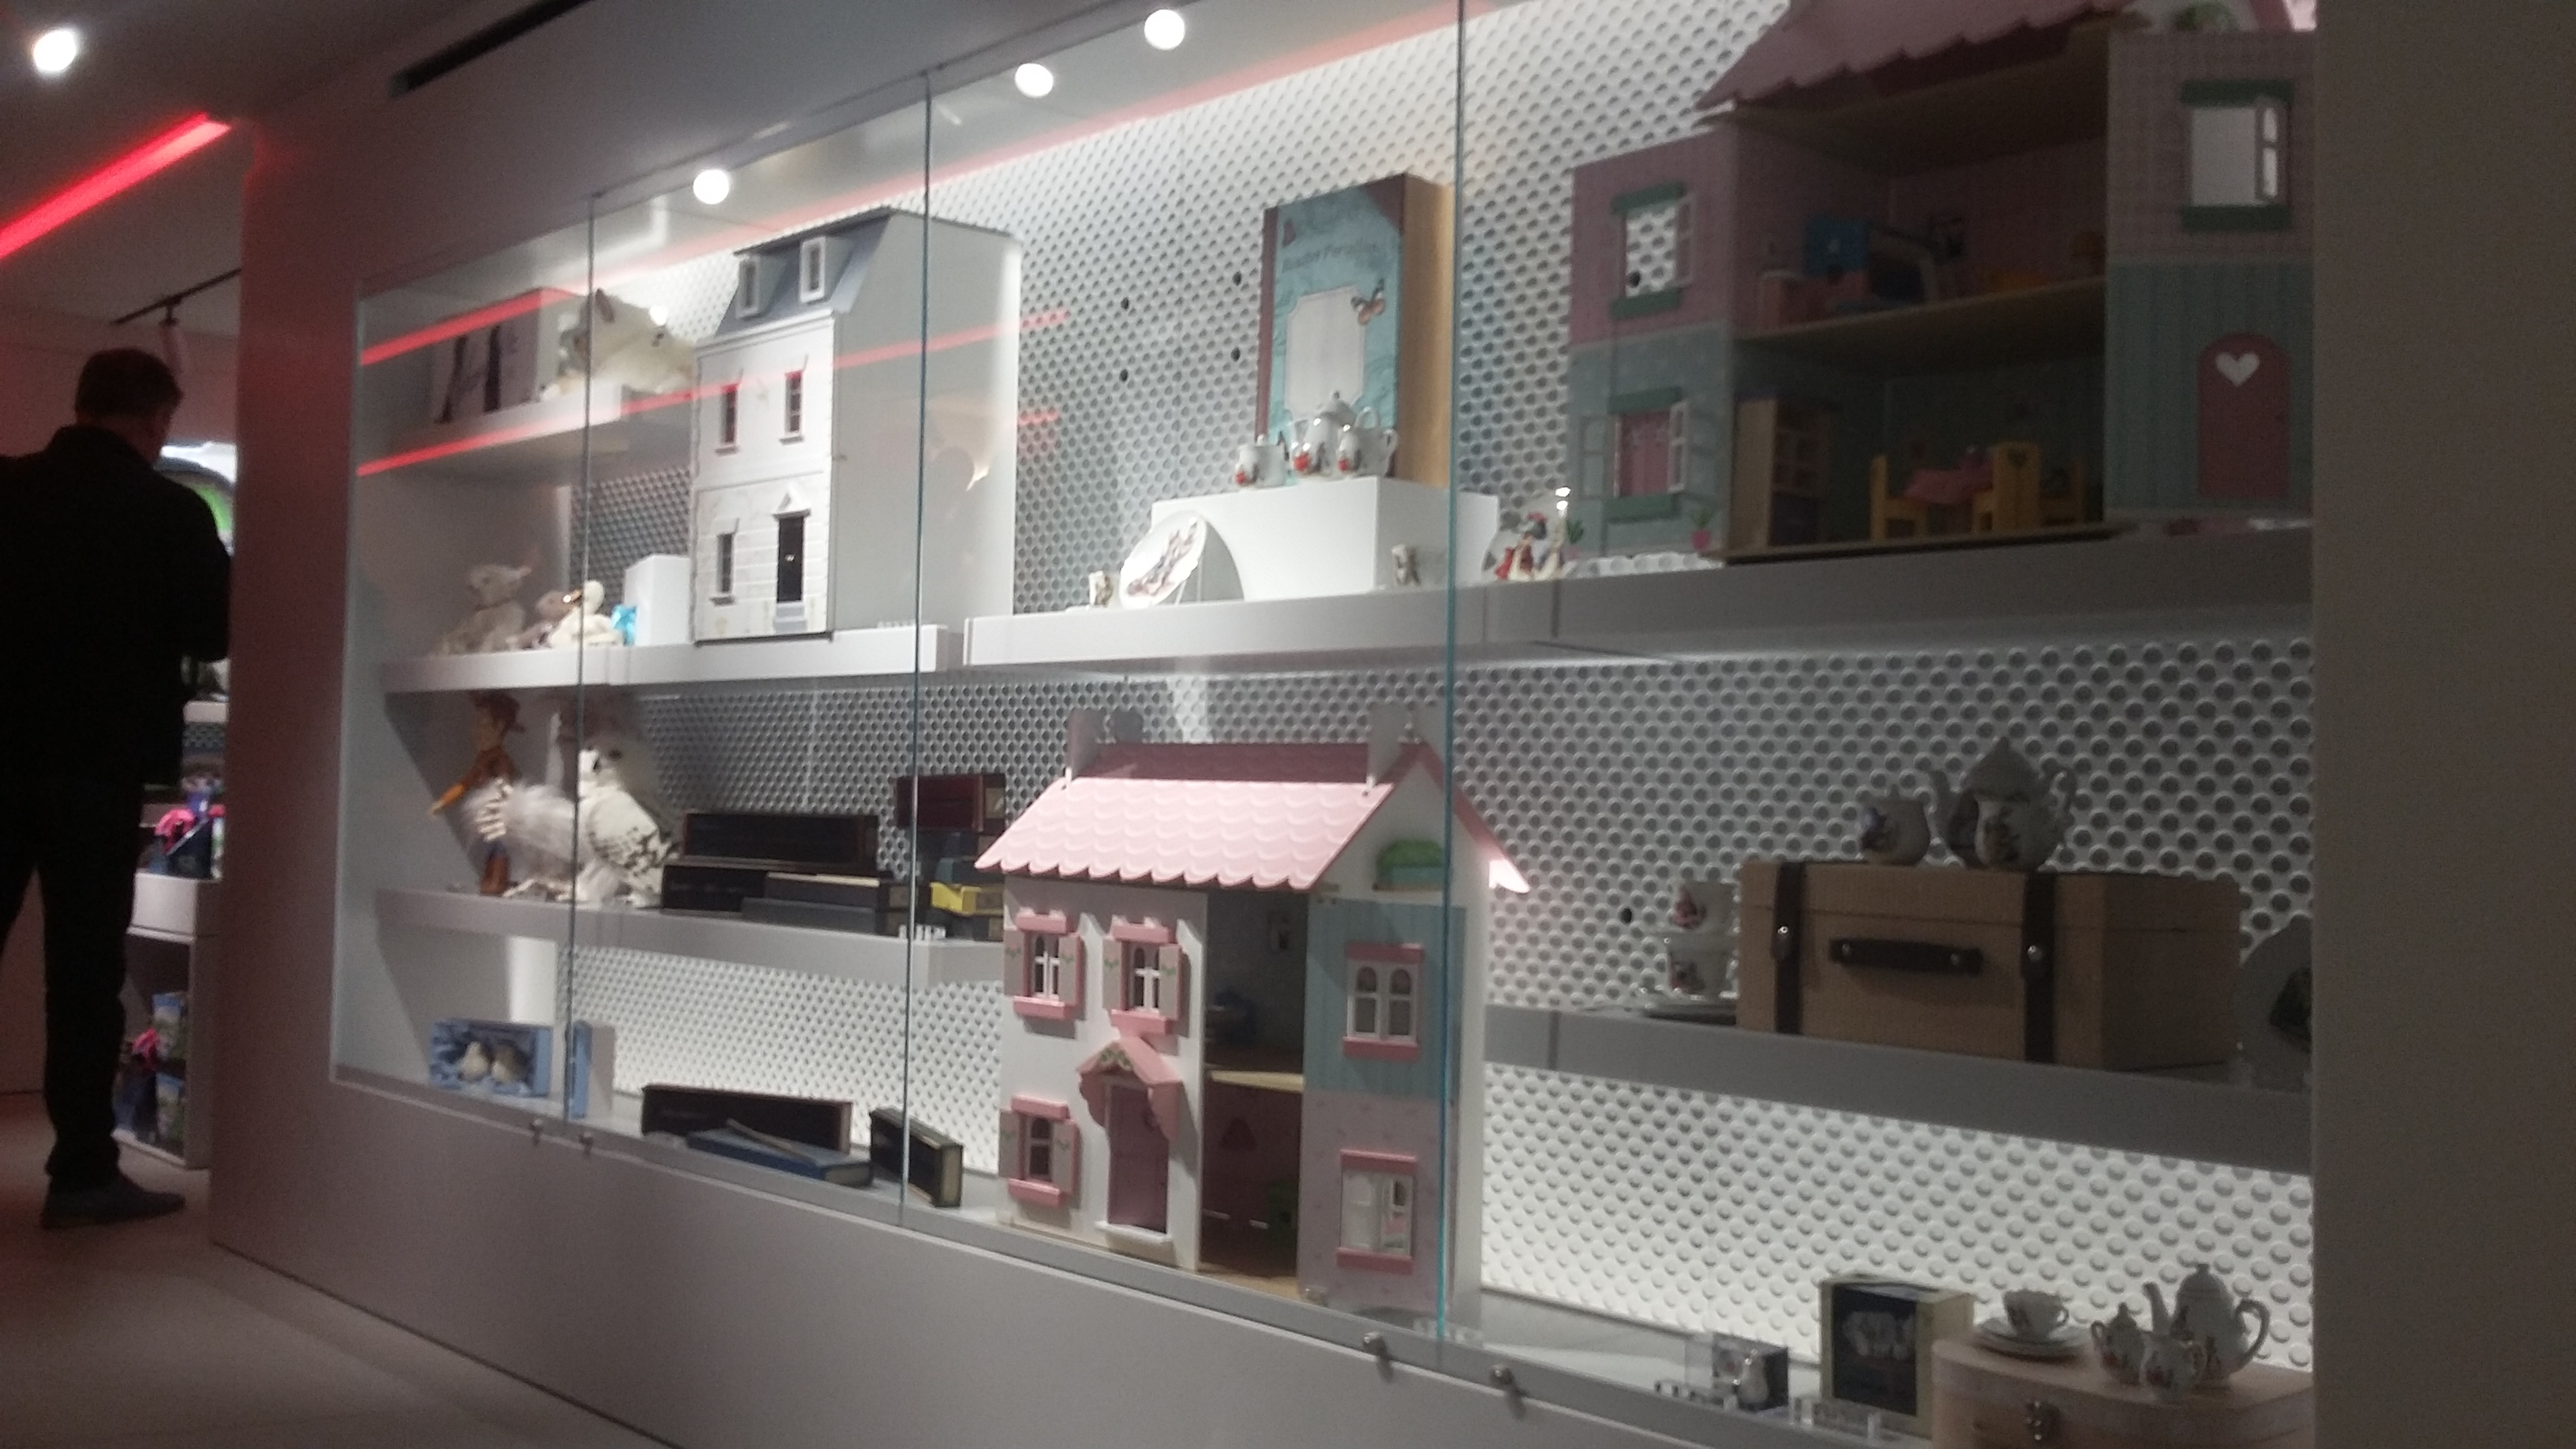 Harrods - doll house and tea sets on display